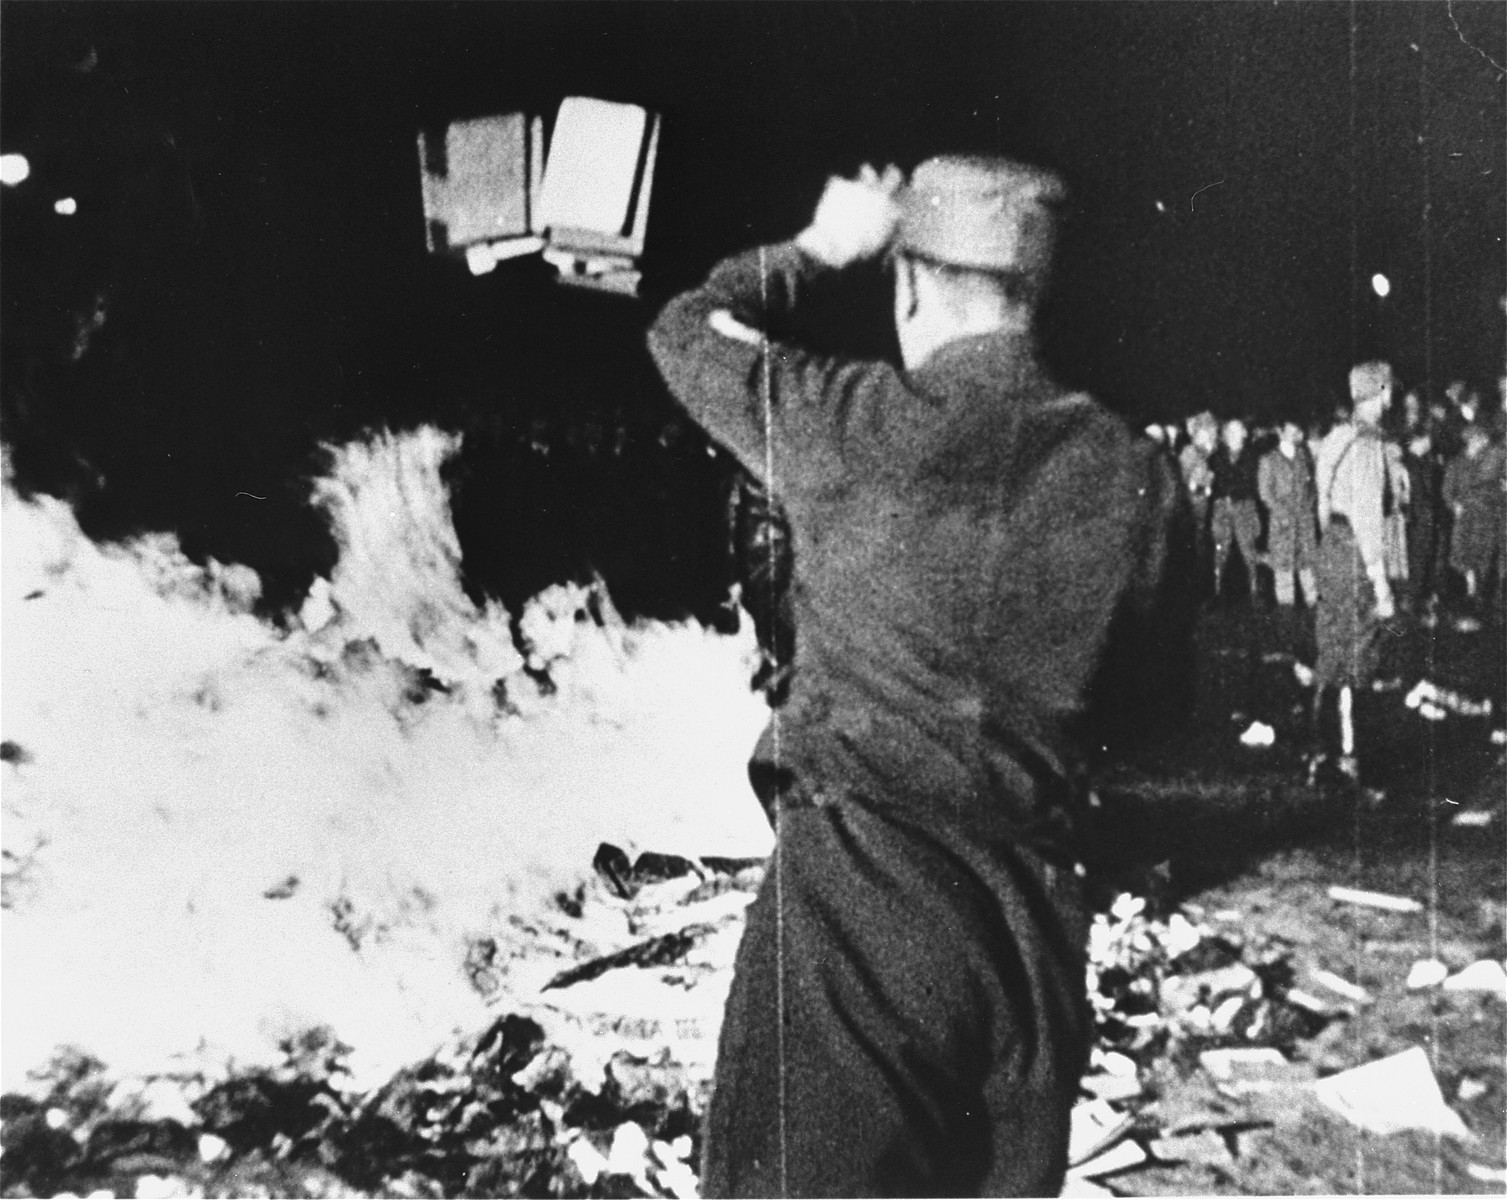 Thousands of books burned by Students and Nazi party officials